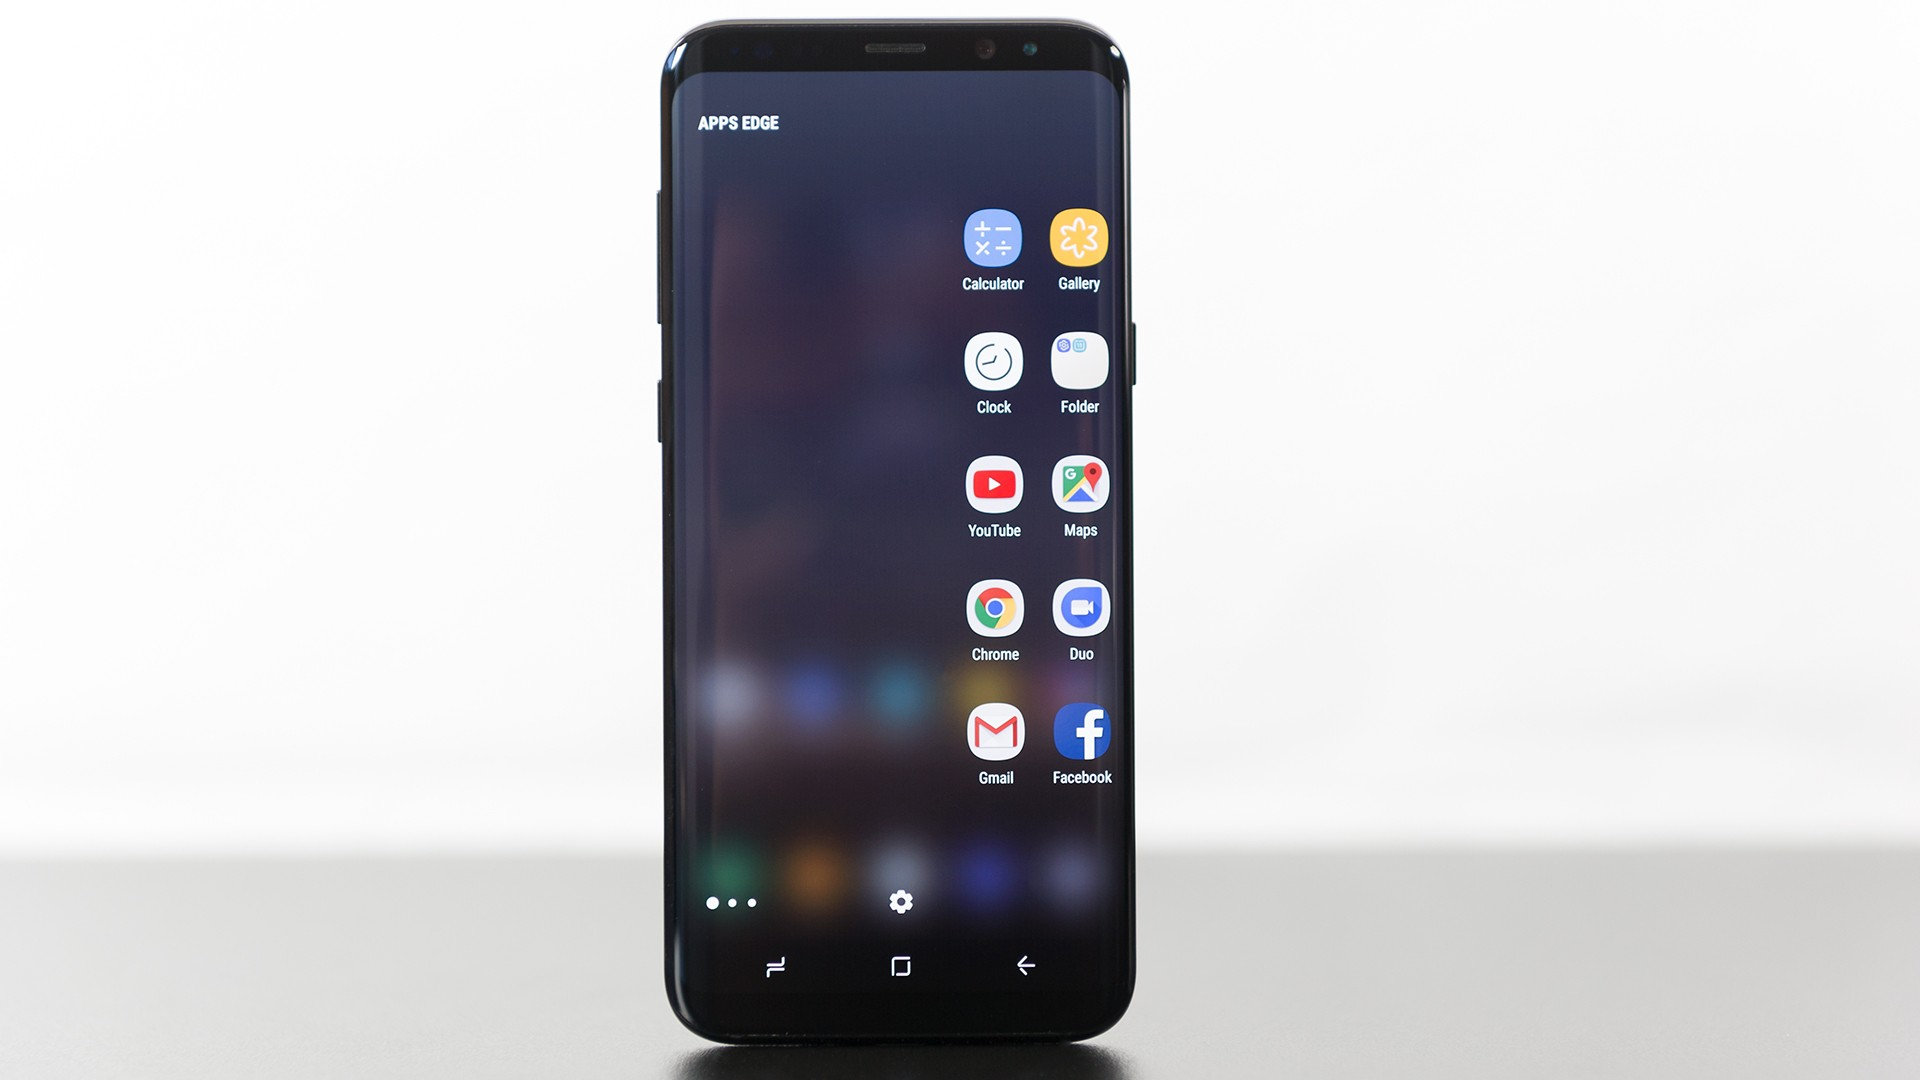 Samsung Galaxy S8 With 6gb Ram And 128gb Storage Review Plus Duos Edge Screen